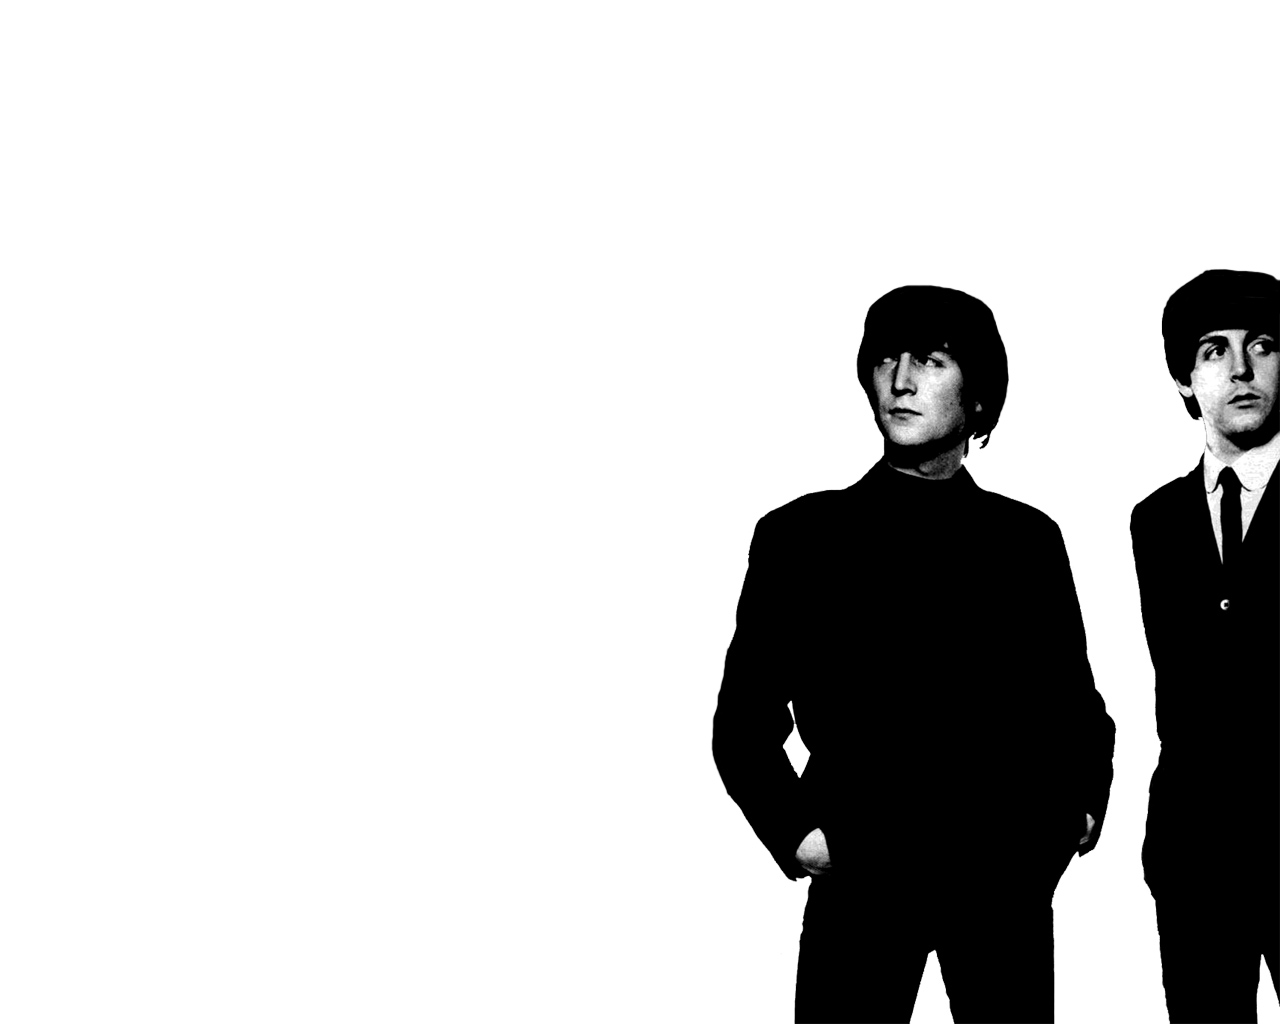 1280x1024 Lennon McCartney 2 By WantFriesWithThat On DeviantArt